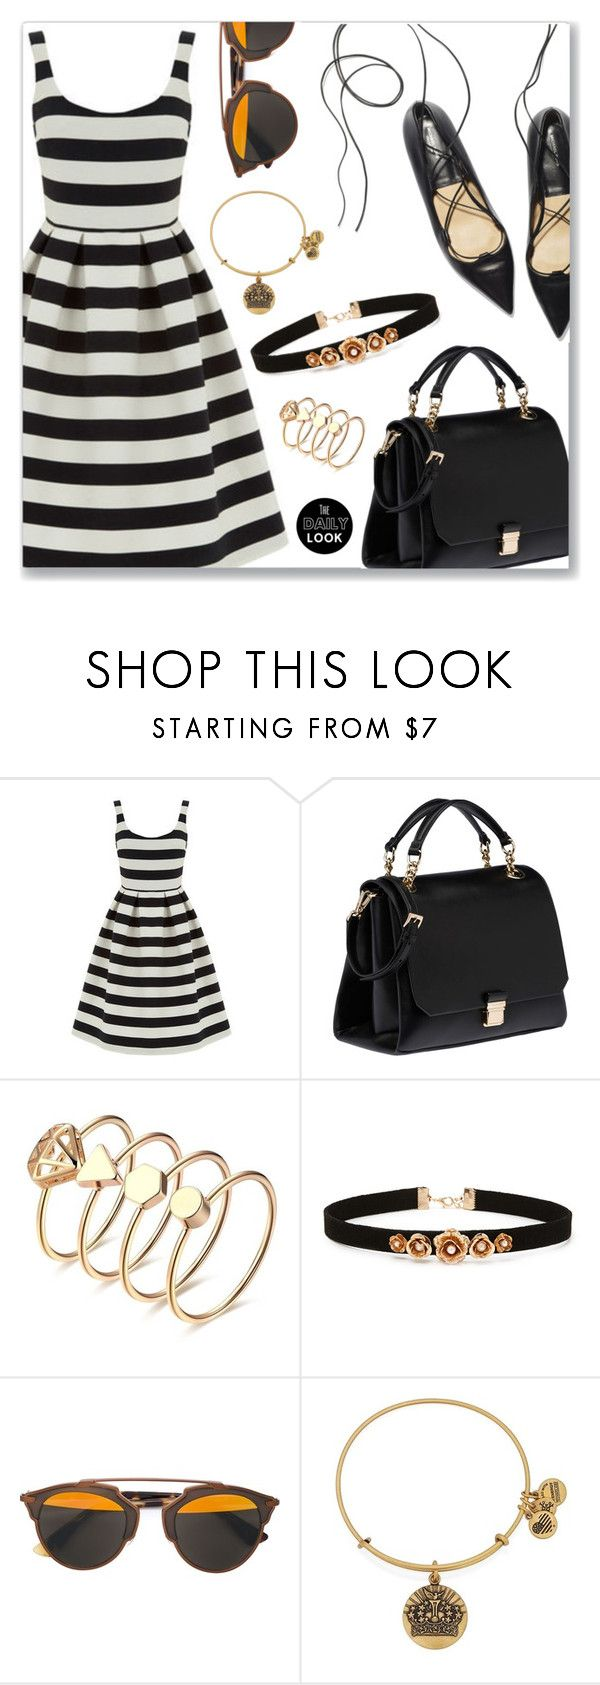 """""""Outfit of the day (Read description)"""" by dressedbyrose ❤ liked on Polyvore featuring Warehouse, Miu Miu, Forever 21, Christian Dior, Alex and Ani and polyvoreeditorial"""